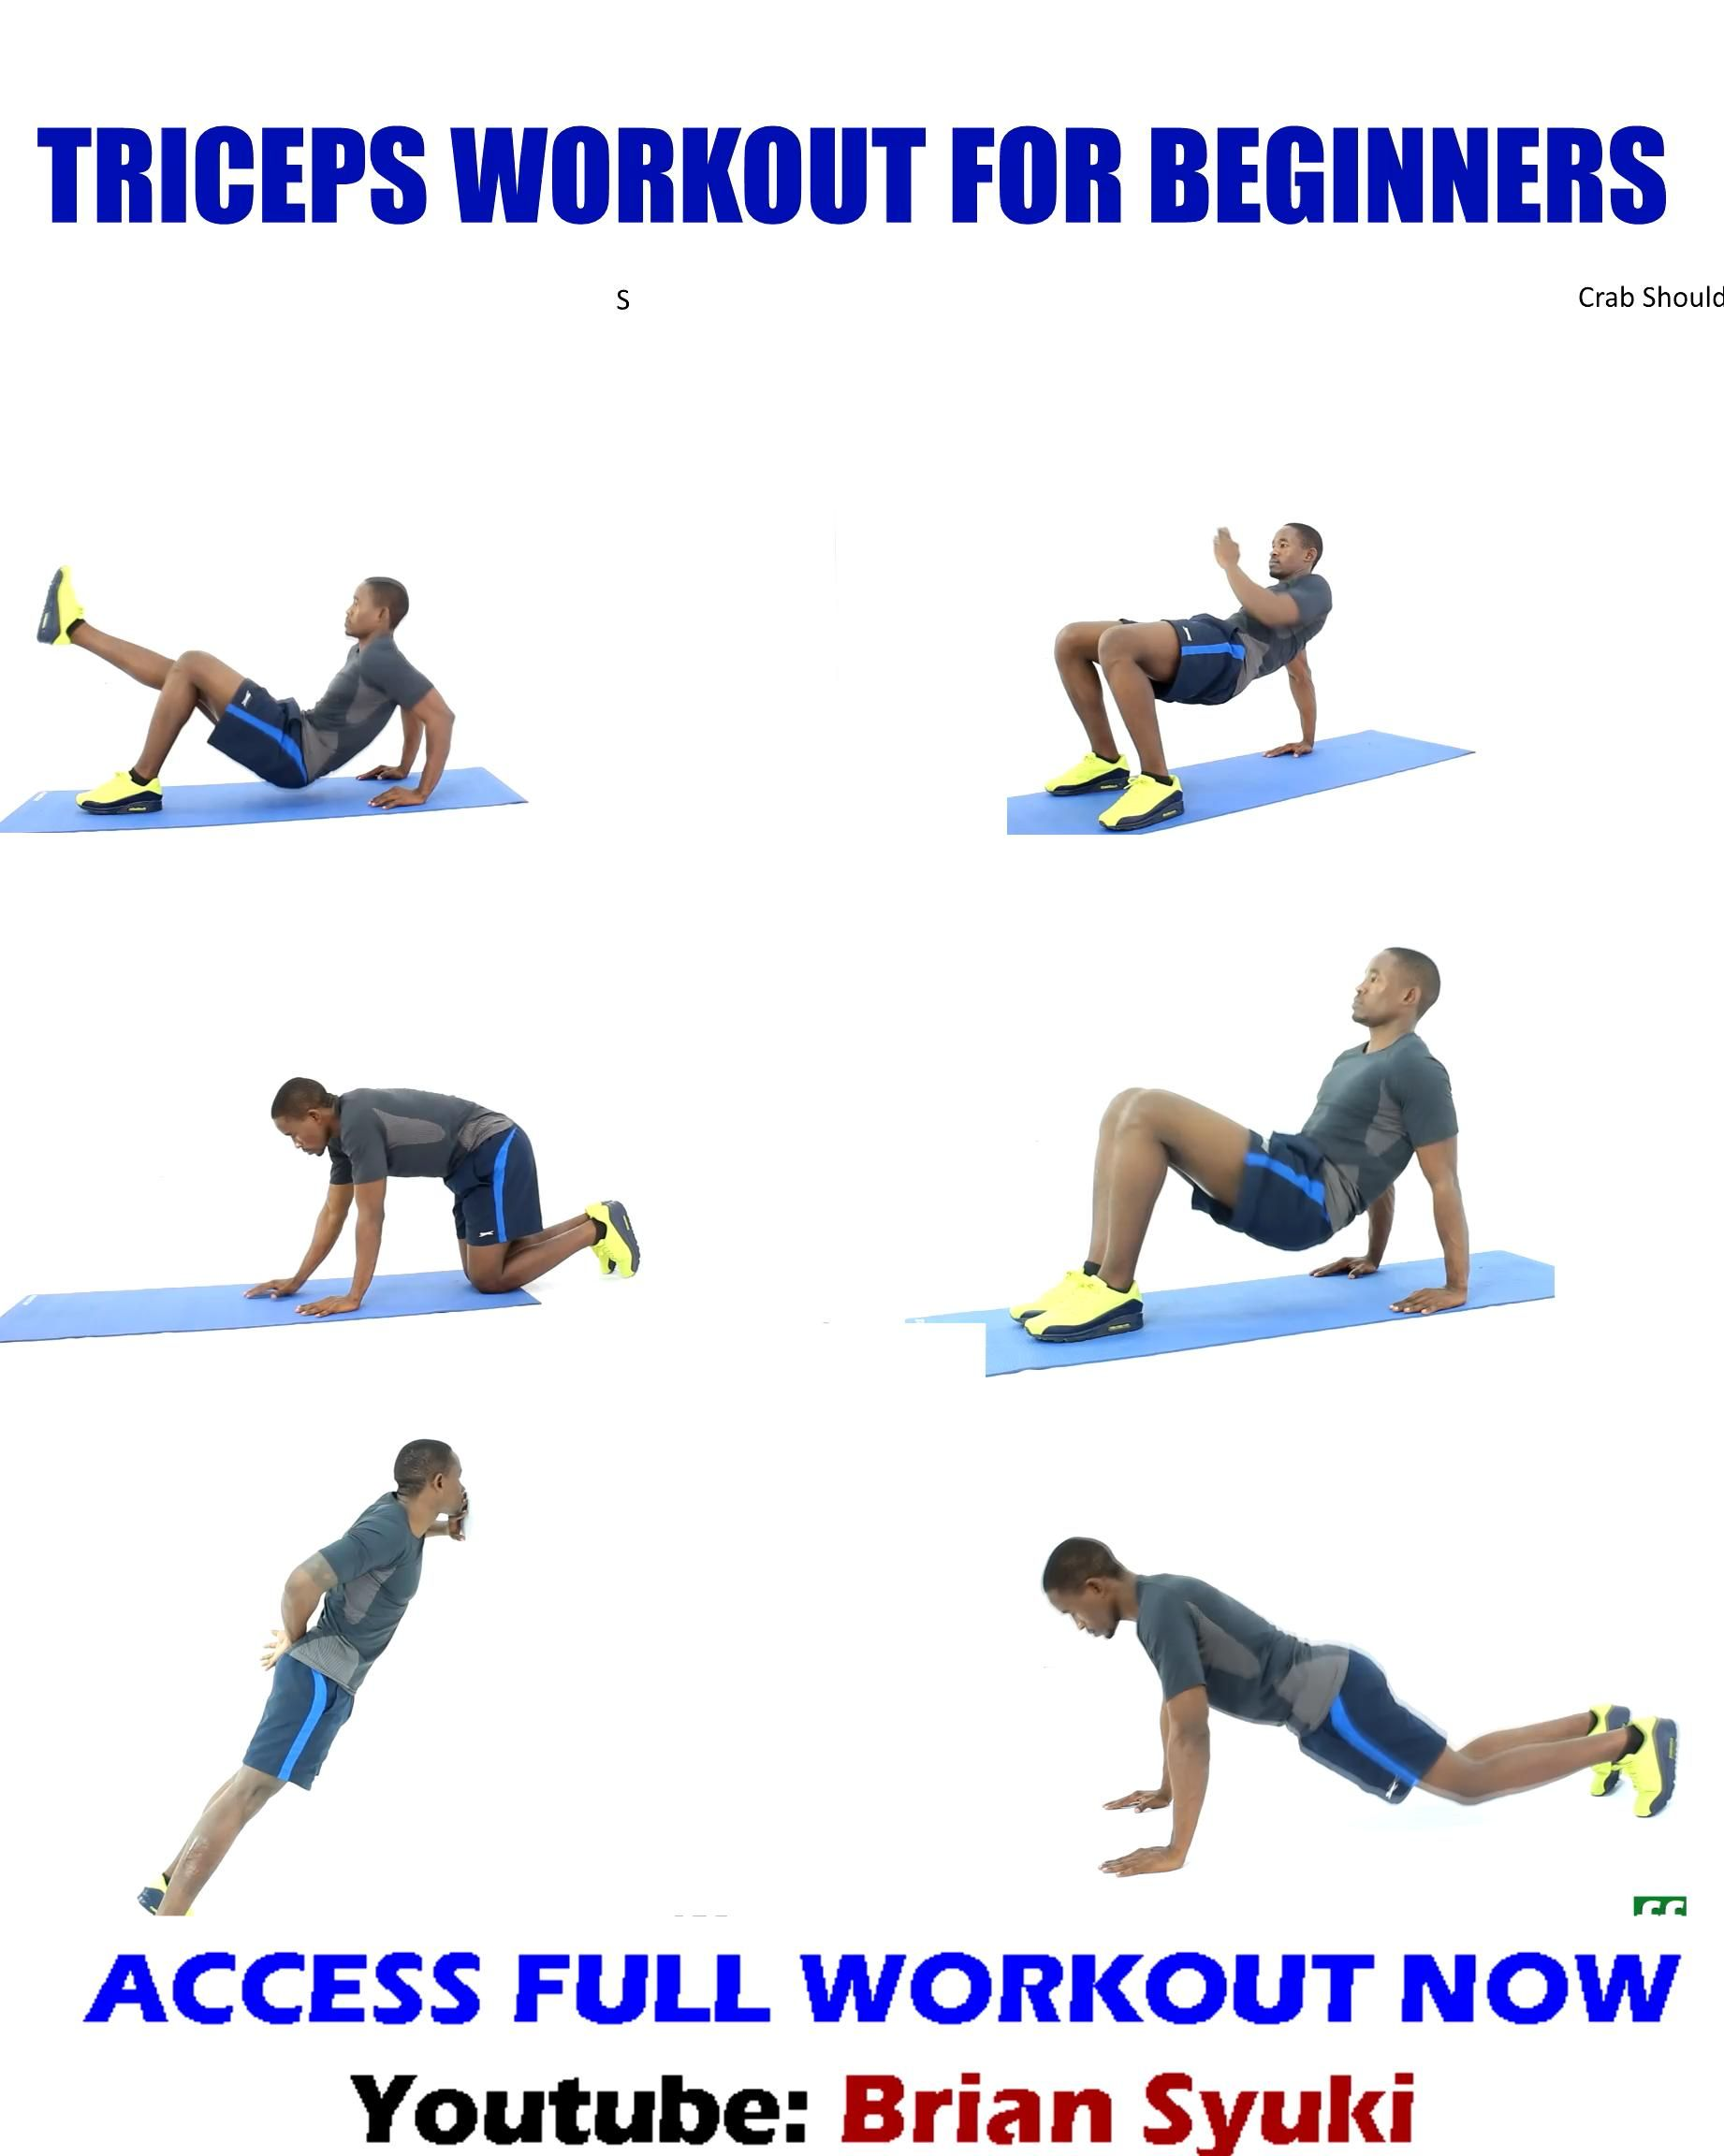 Triceps Workout for Beginners for Toned Arms - No Equipment Needed